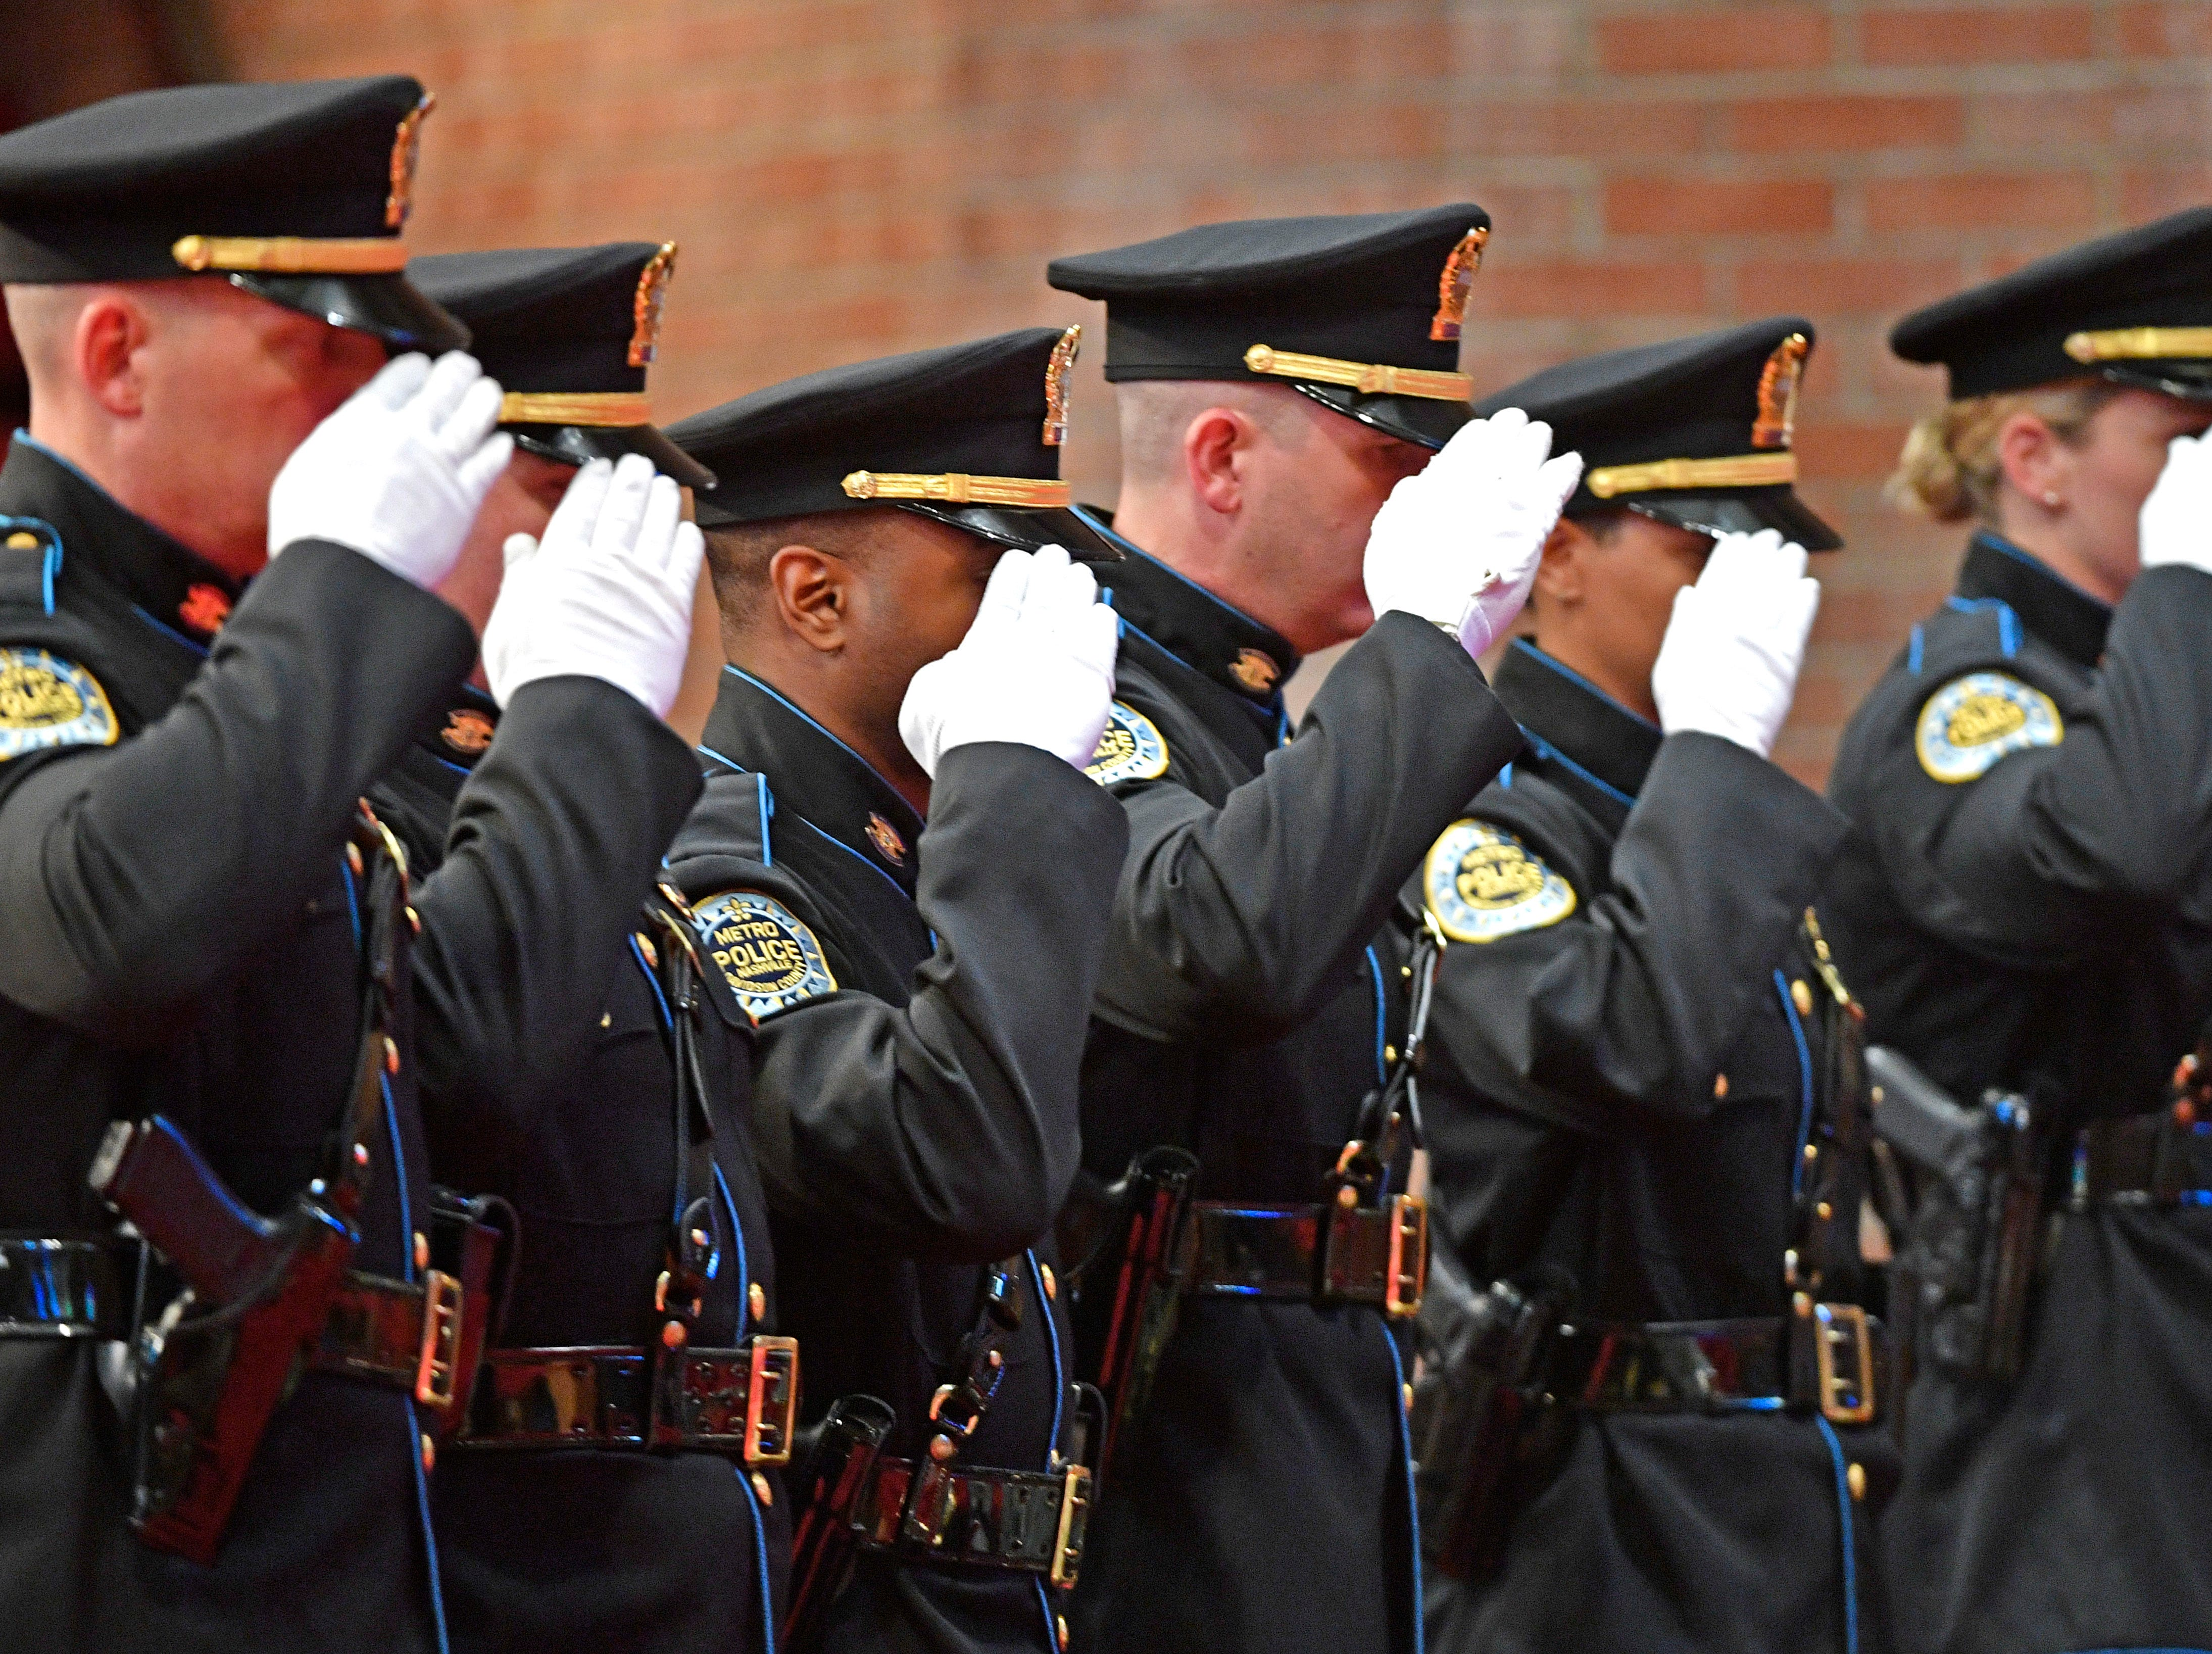 Members of the Police Drill and Ceremony Team salute the photos of fallen officers at the annual memorial service honoring Nashville's police officers who have died in service to the city Thursday, May 9, 2019, in Nashville, Tenn.